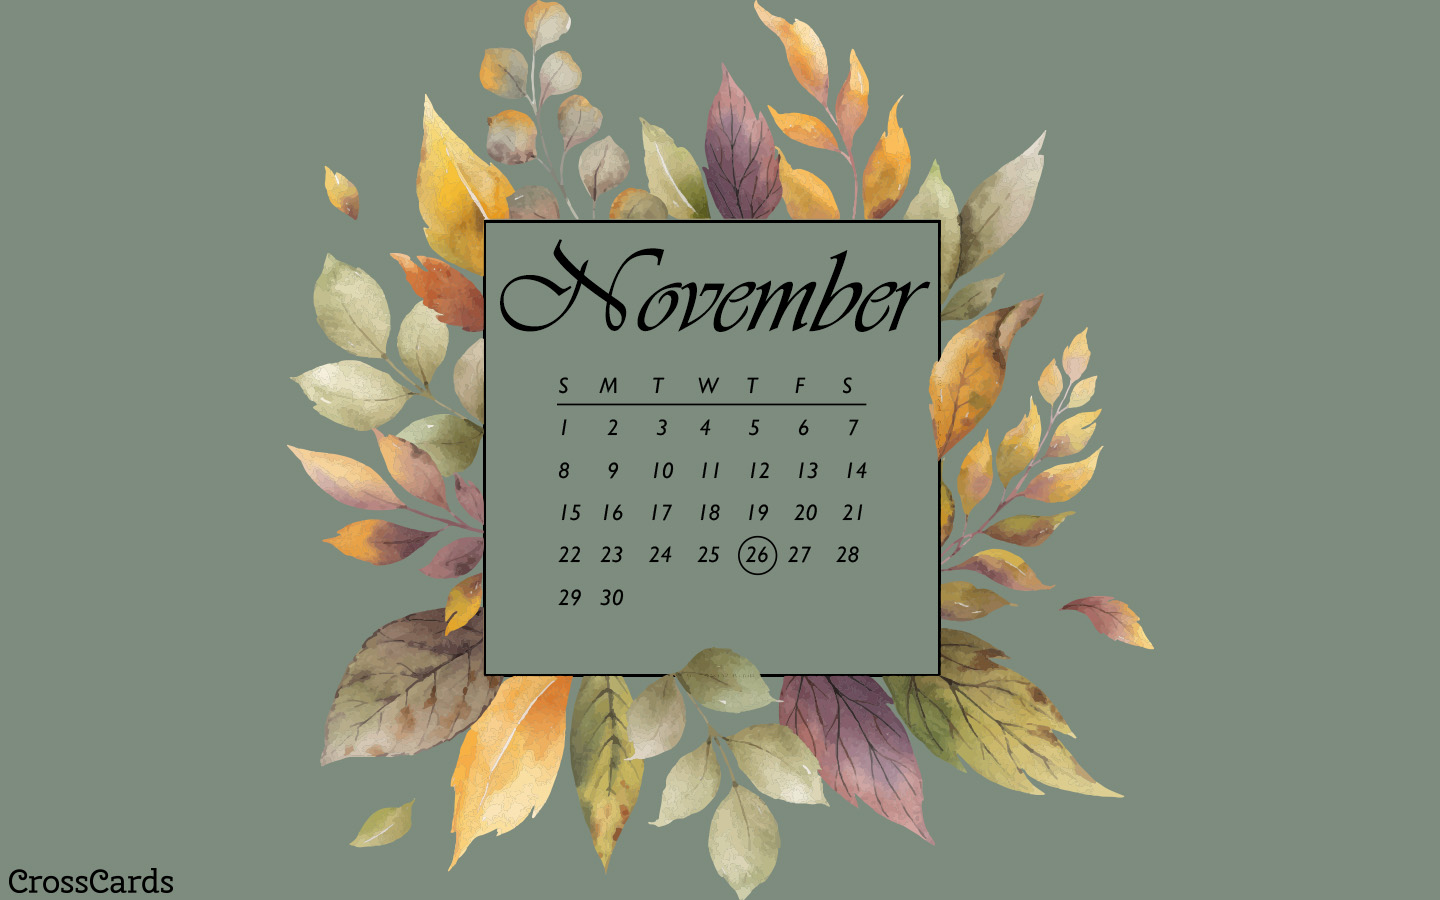 November 2020 - Watercolor Leaves mobile phone wallpaper